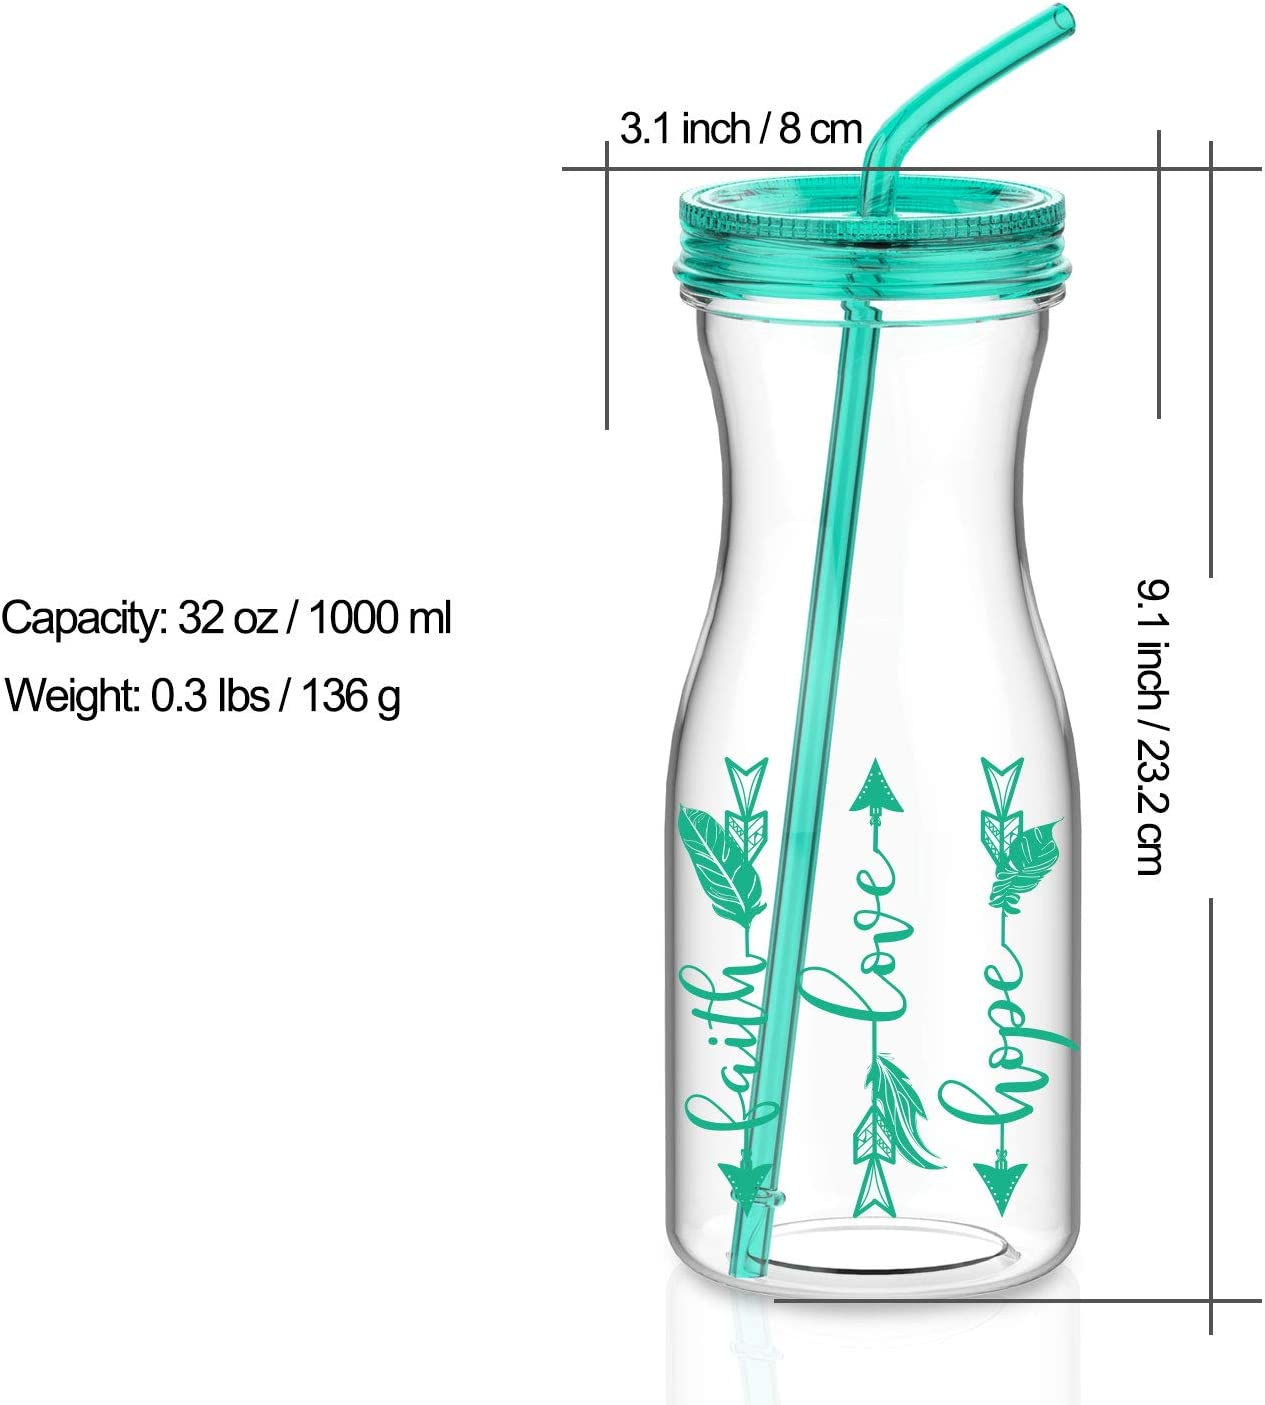 BPA Free Artoid Mode 1000ml Motivational Tumbler with Straw Faith Love Hope Arrow Dishwasher-Safe Tritan Water Bottle Drink Cup with Twist Lid